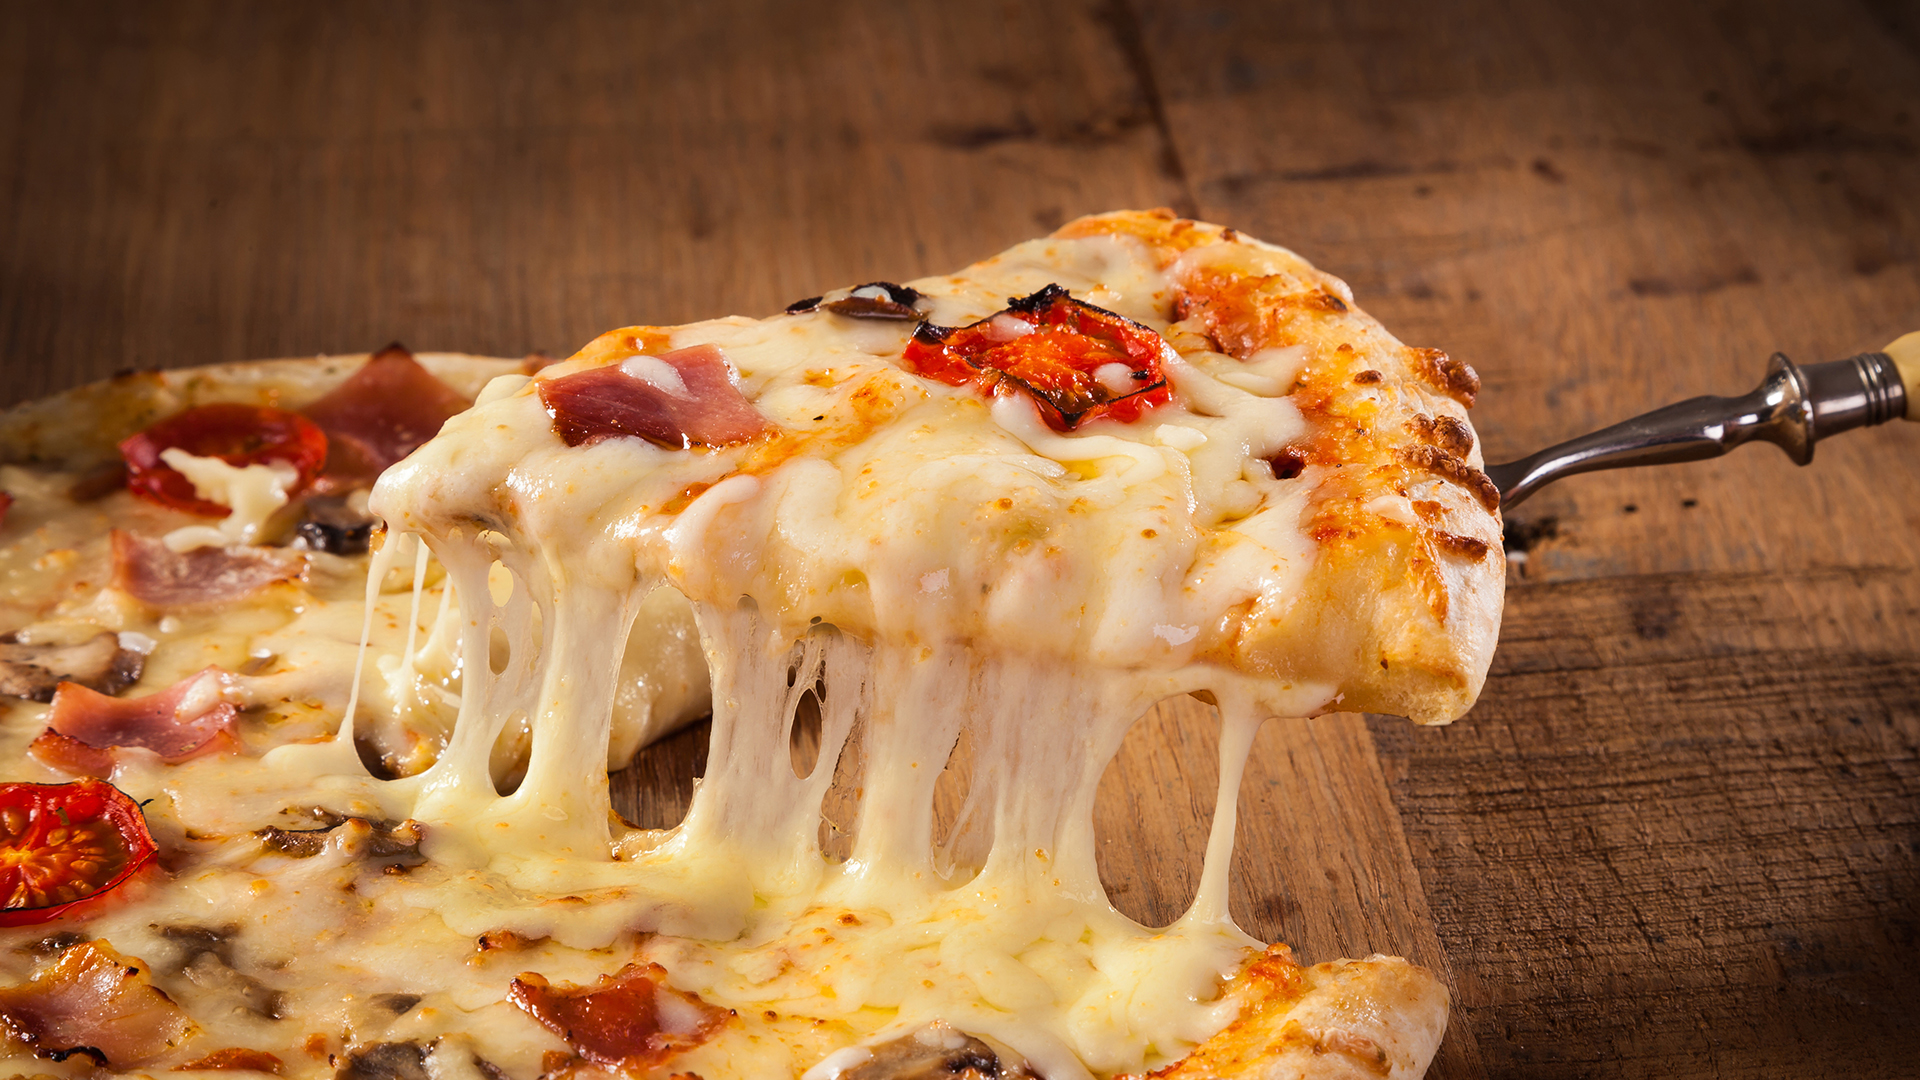 Looking For Deals On National Pizza Day Its As Easy As Pie - Pizza hut table rock lake